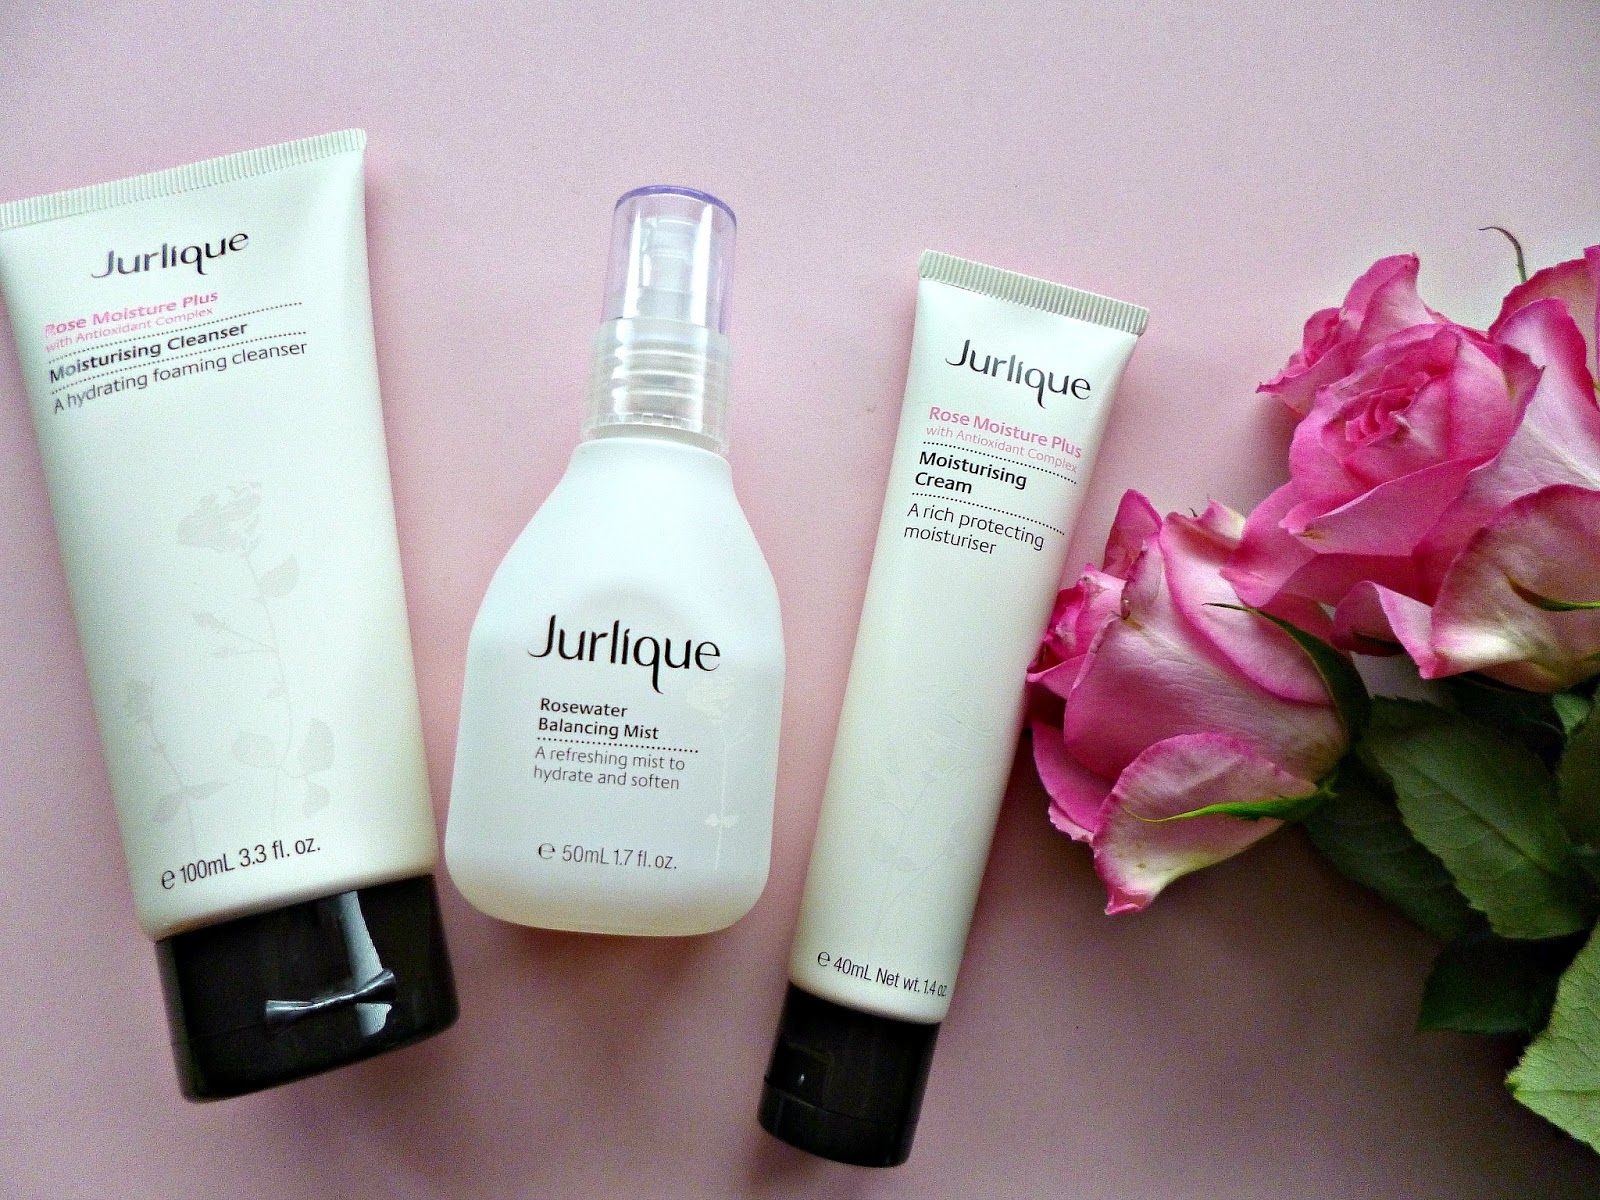 Jurlique Rose moisture plus range